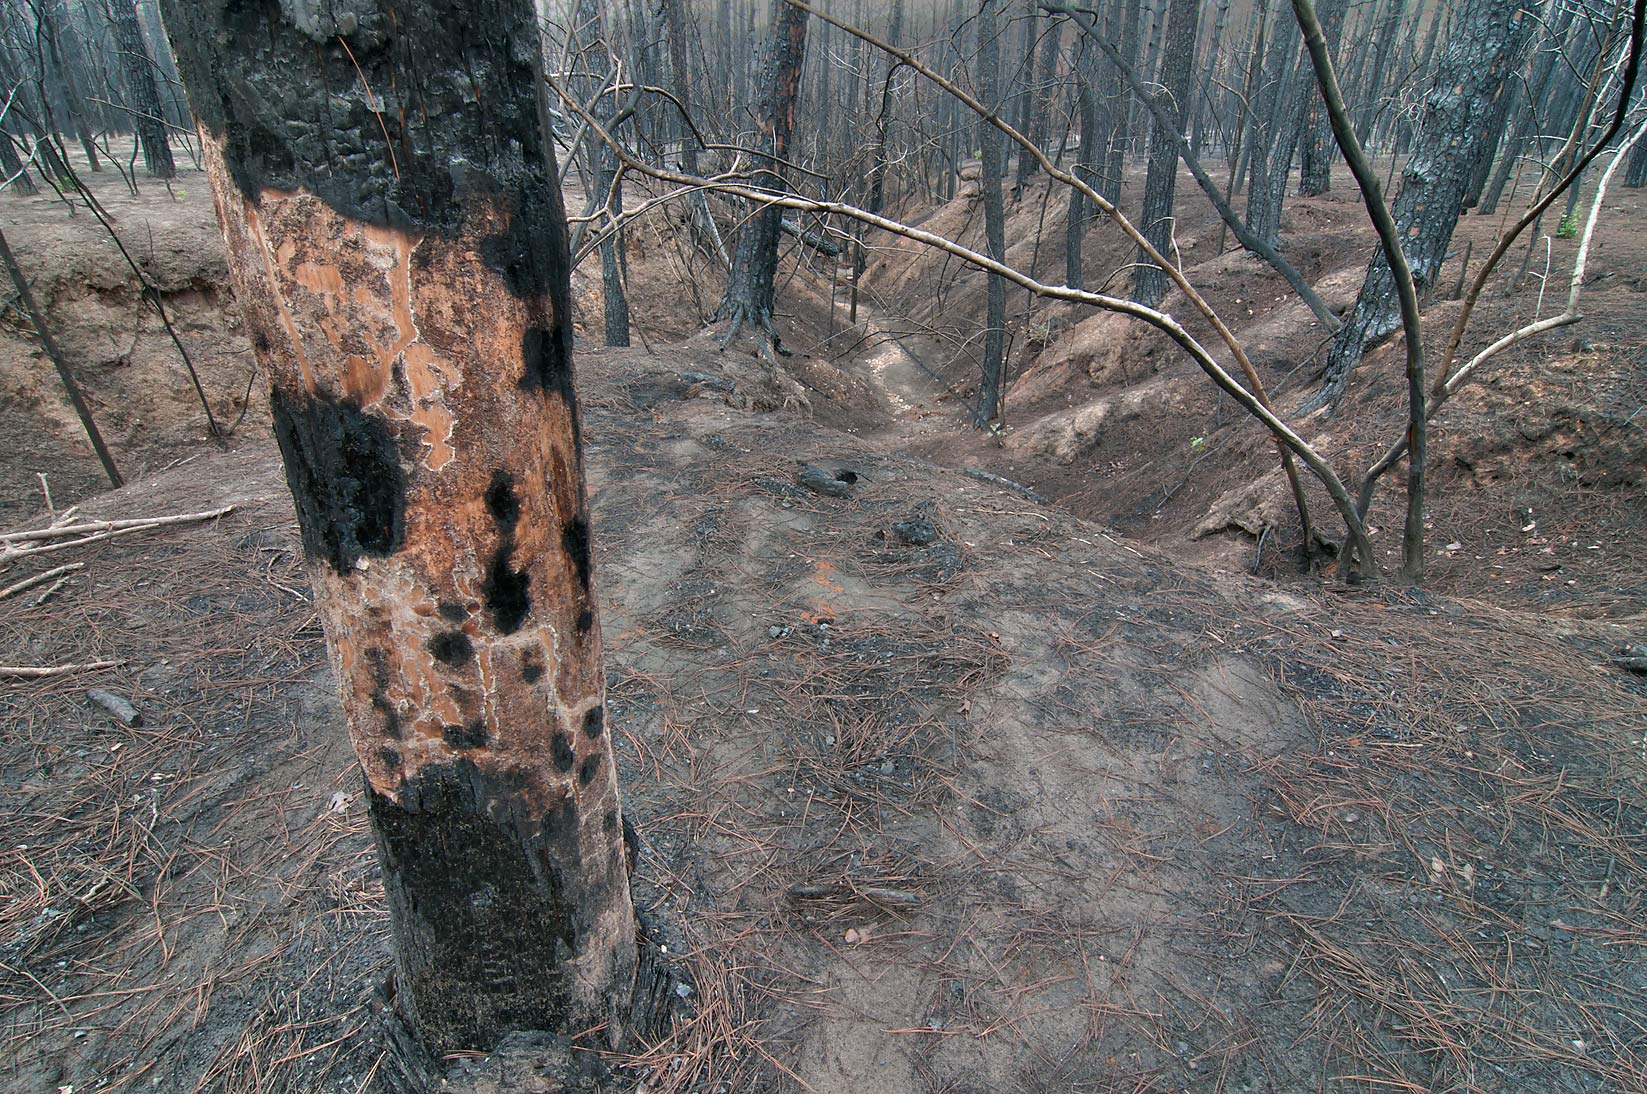 Tree damage in Bastrop State Park. Bastrop, Texas